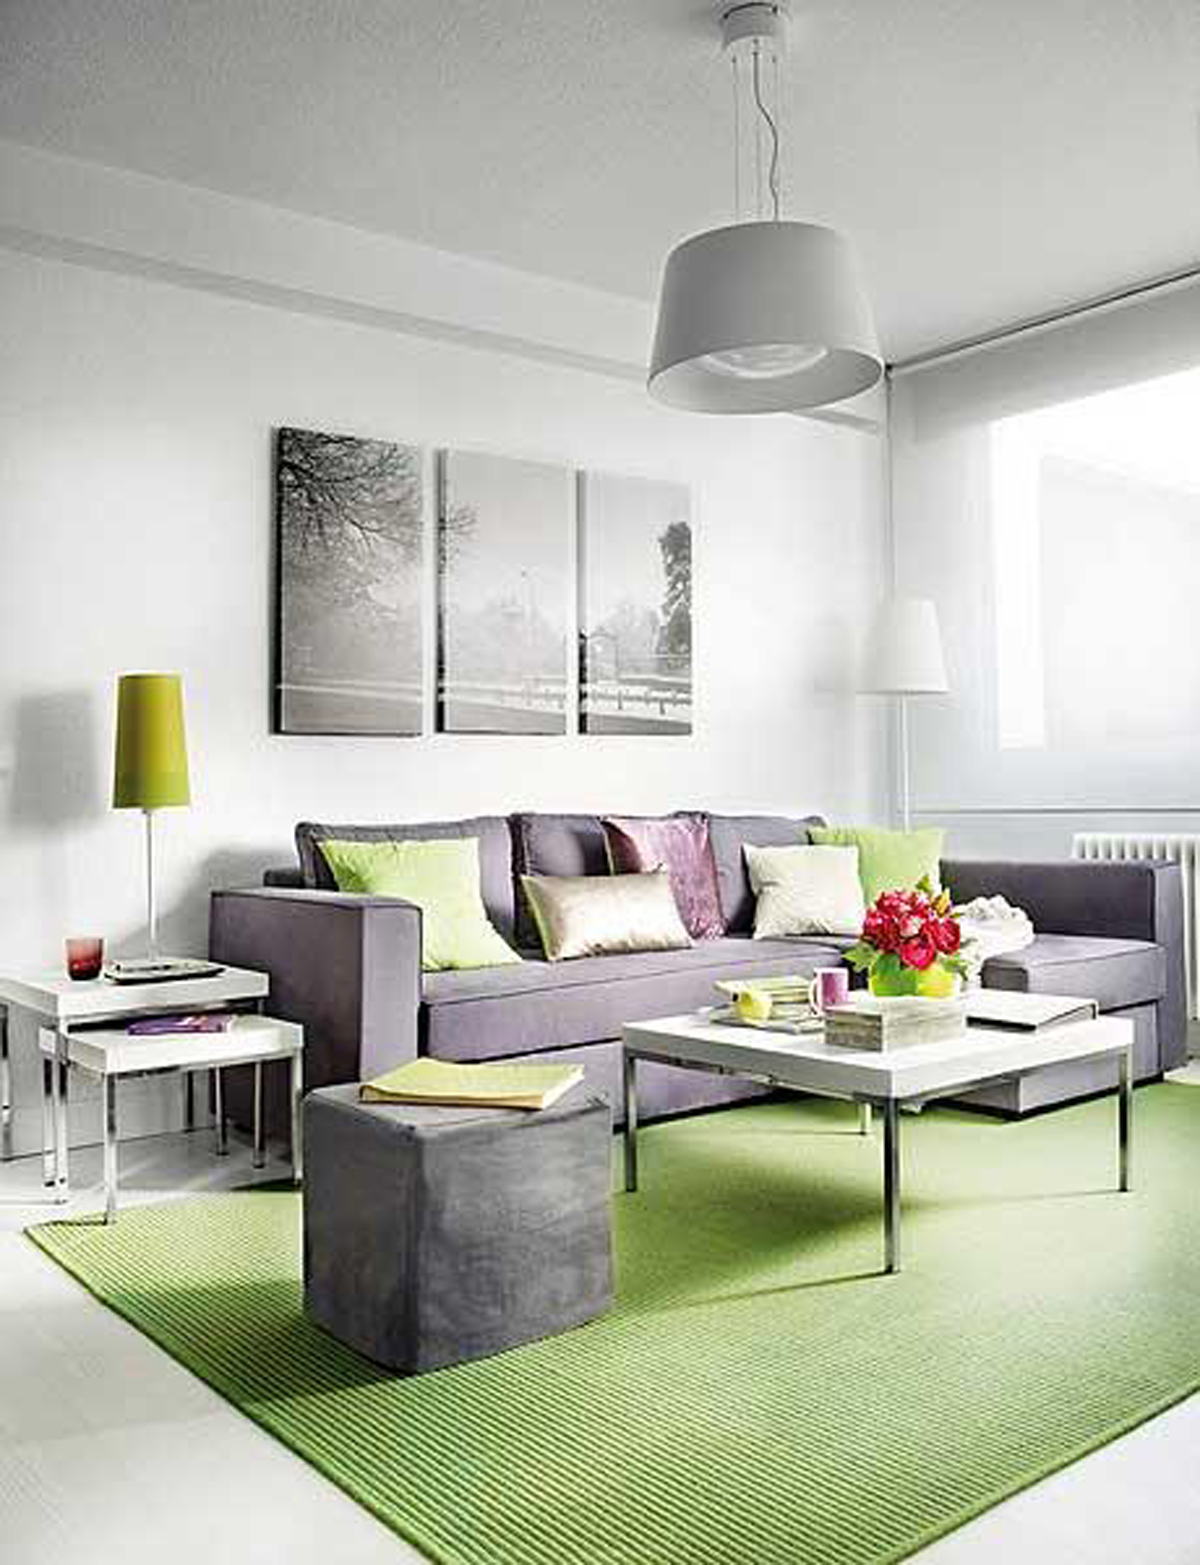 living-room-decorating-ideas-for-small-house-kirlittle-inside-appealiing-and-adorable-interior-decorating-apartment-design-ideas